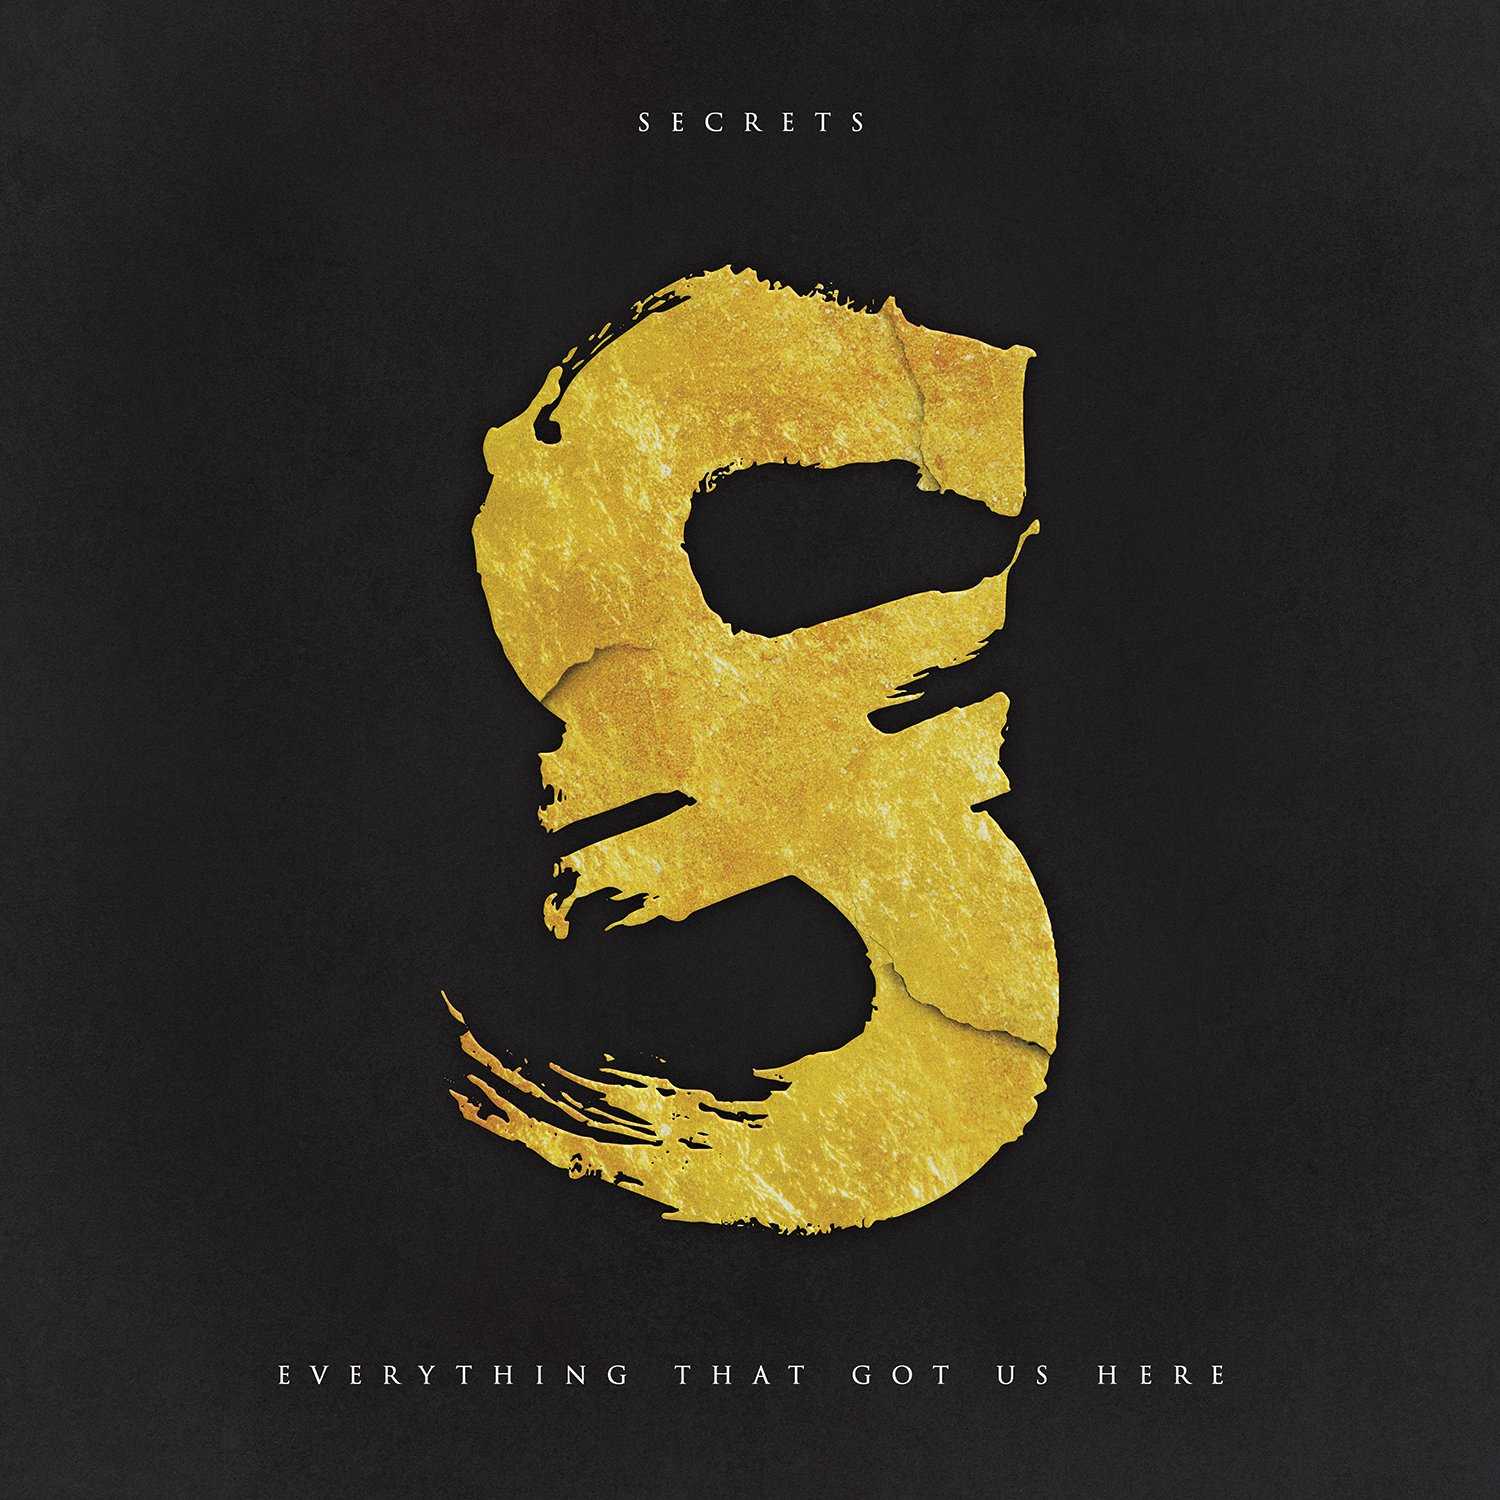 CD : The Secrets - Everything That Got Us Here (CD)